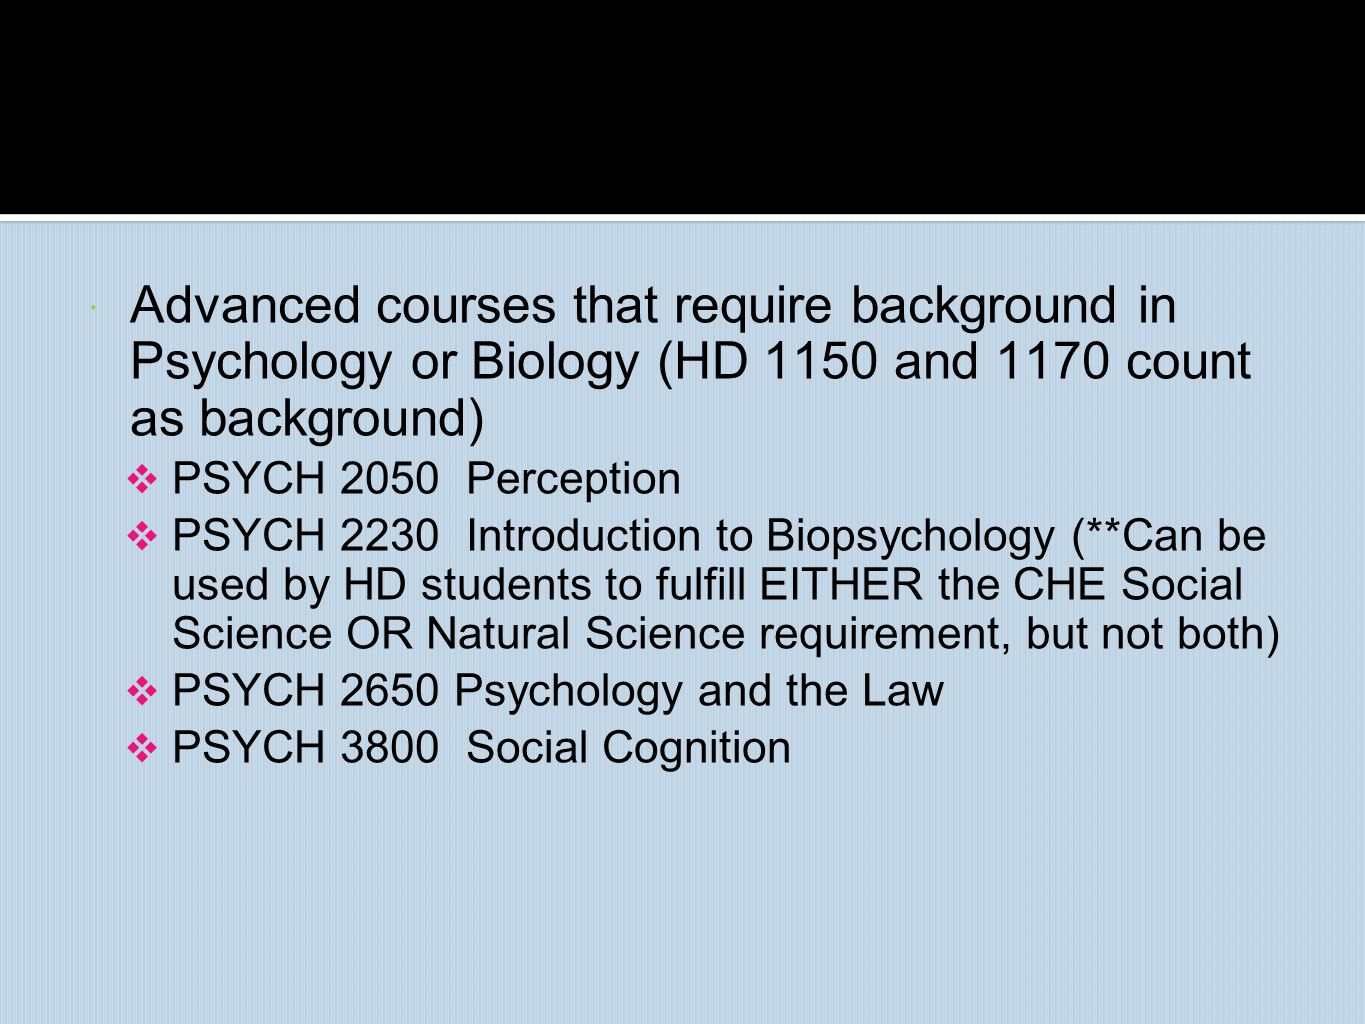 Advanced courses that require background in Psychology or Biology (HD 1150 and 1170 count as background)